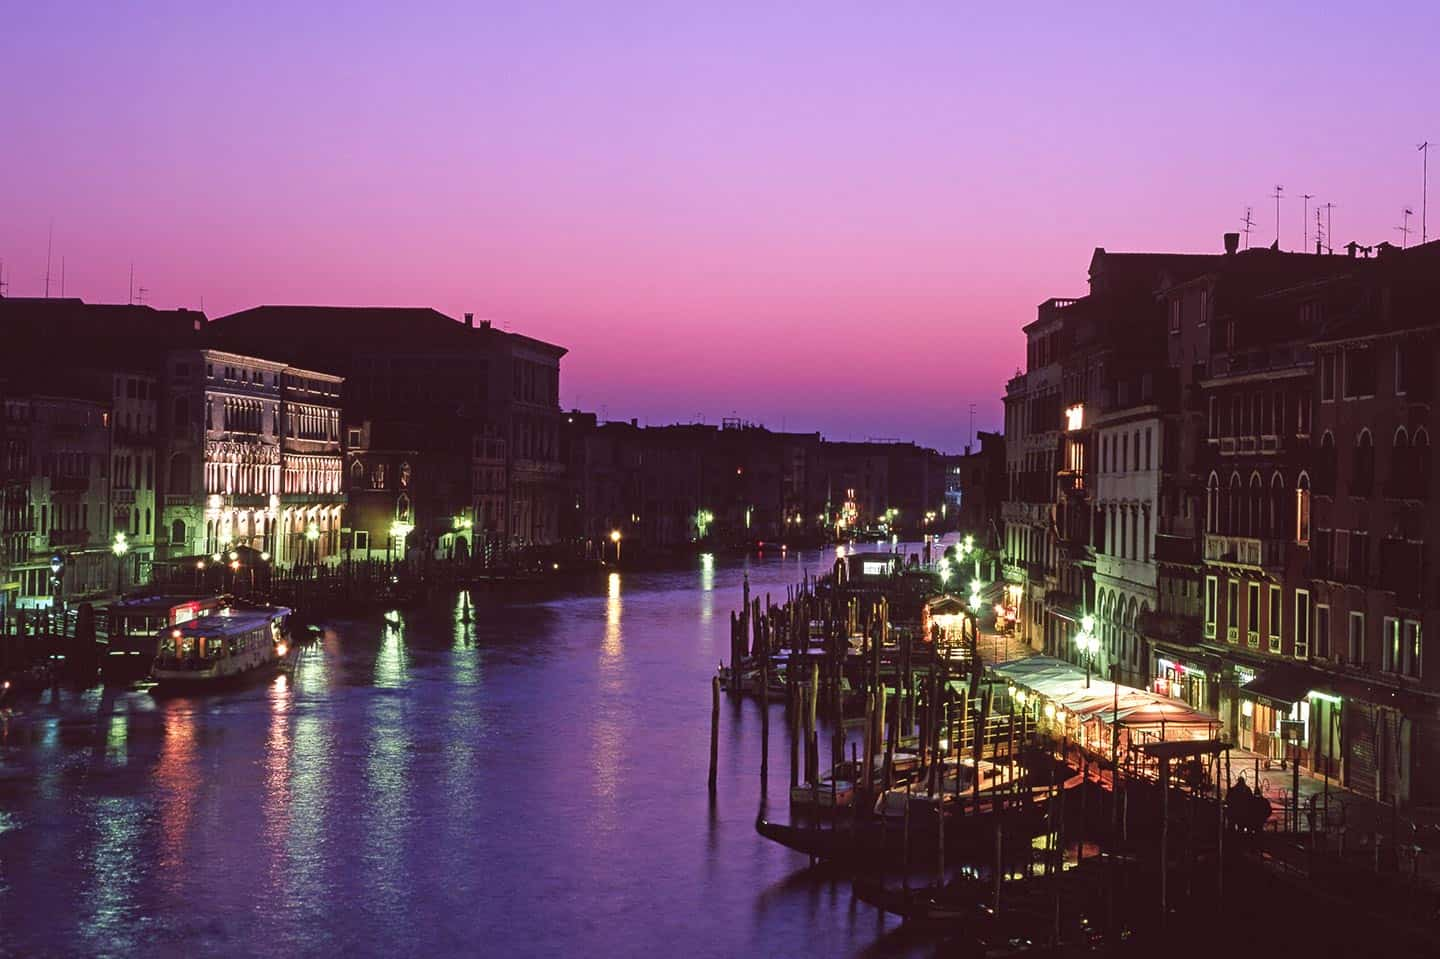 Image of the Grand Canal in Venice at night